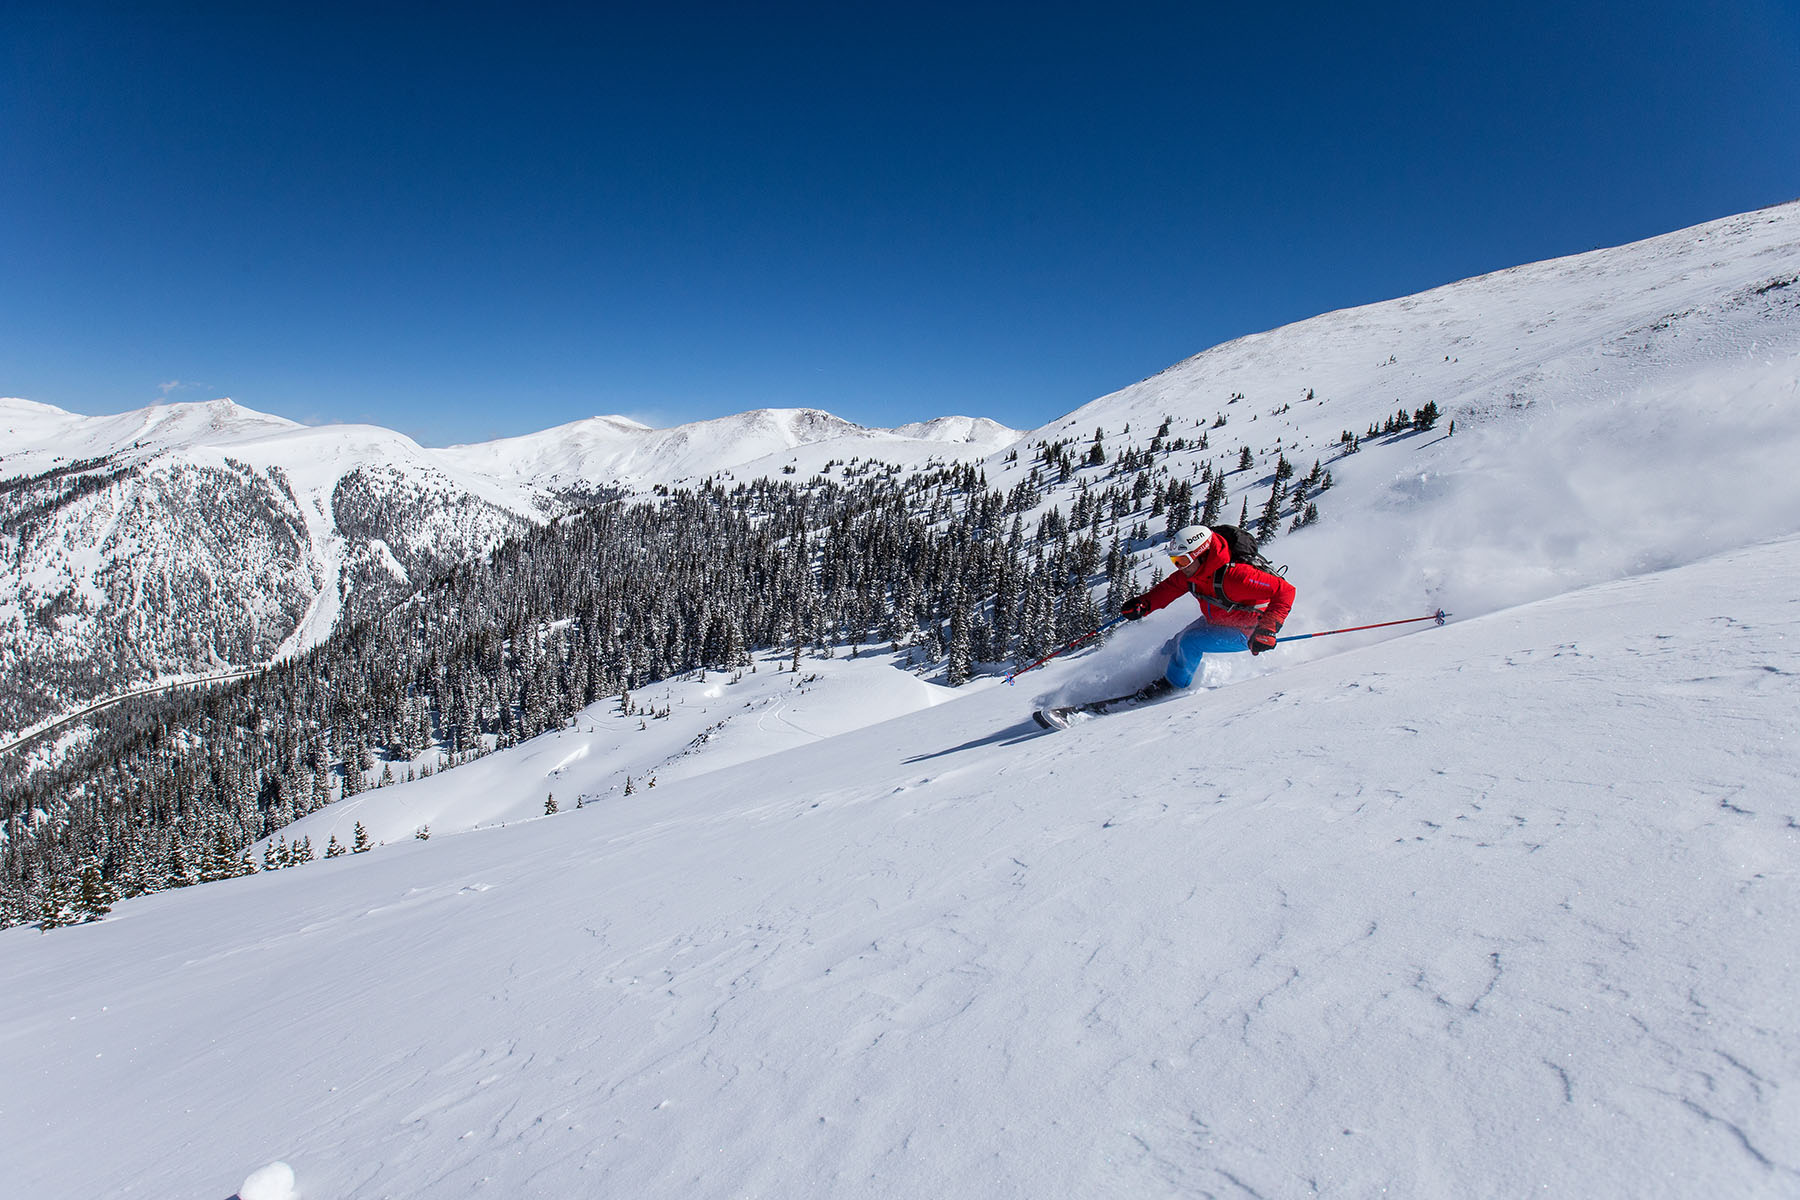 arapahoe basin ski area moves forward with expansion into the